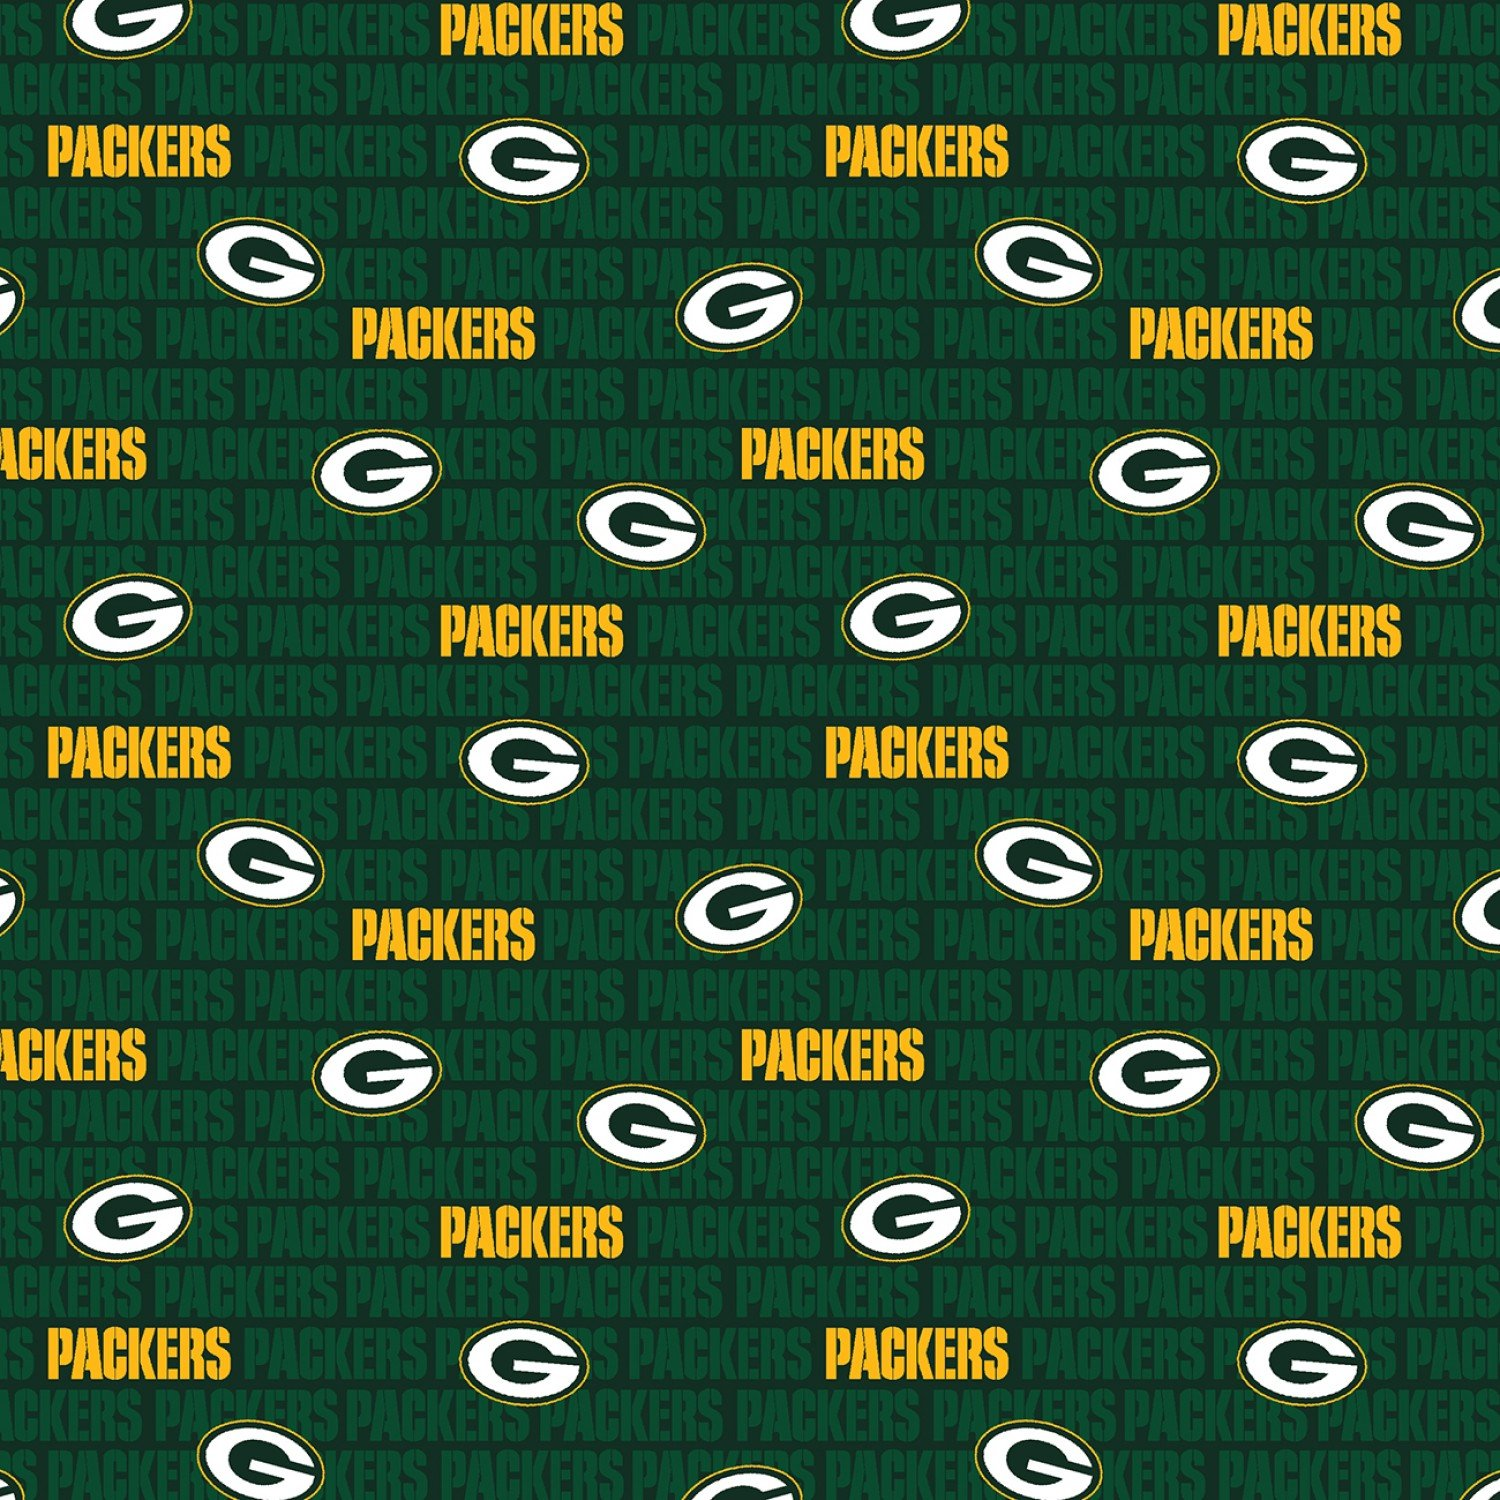 FT-NFL Cotton 14494-D Green Bay Packers